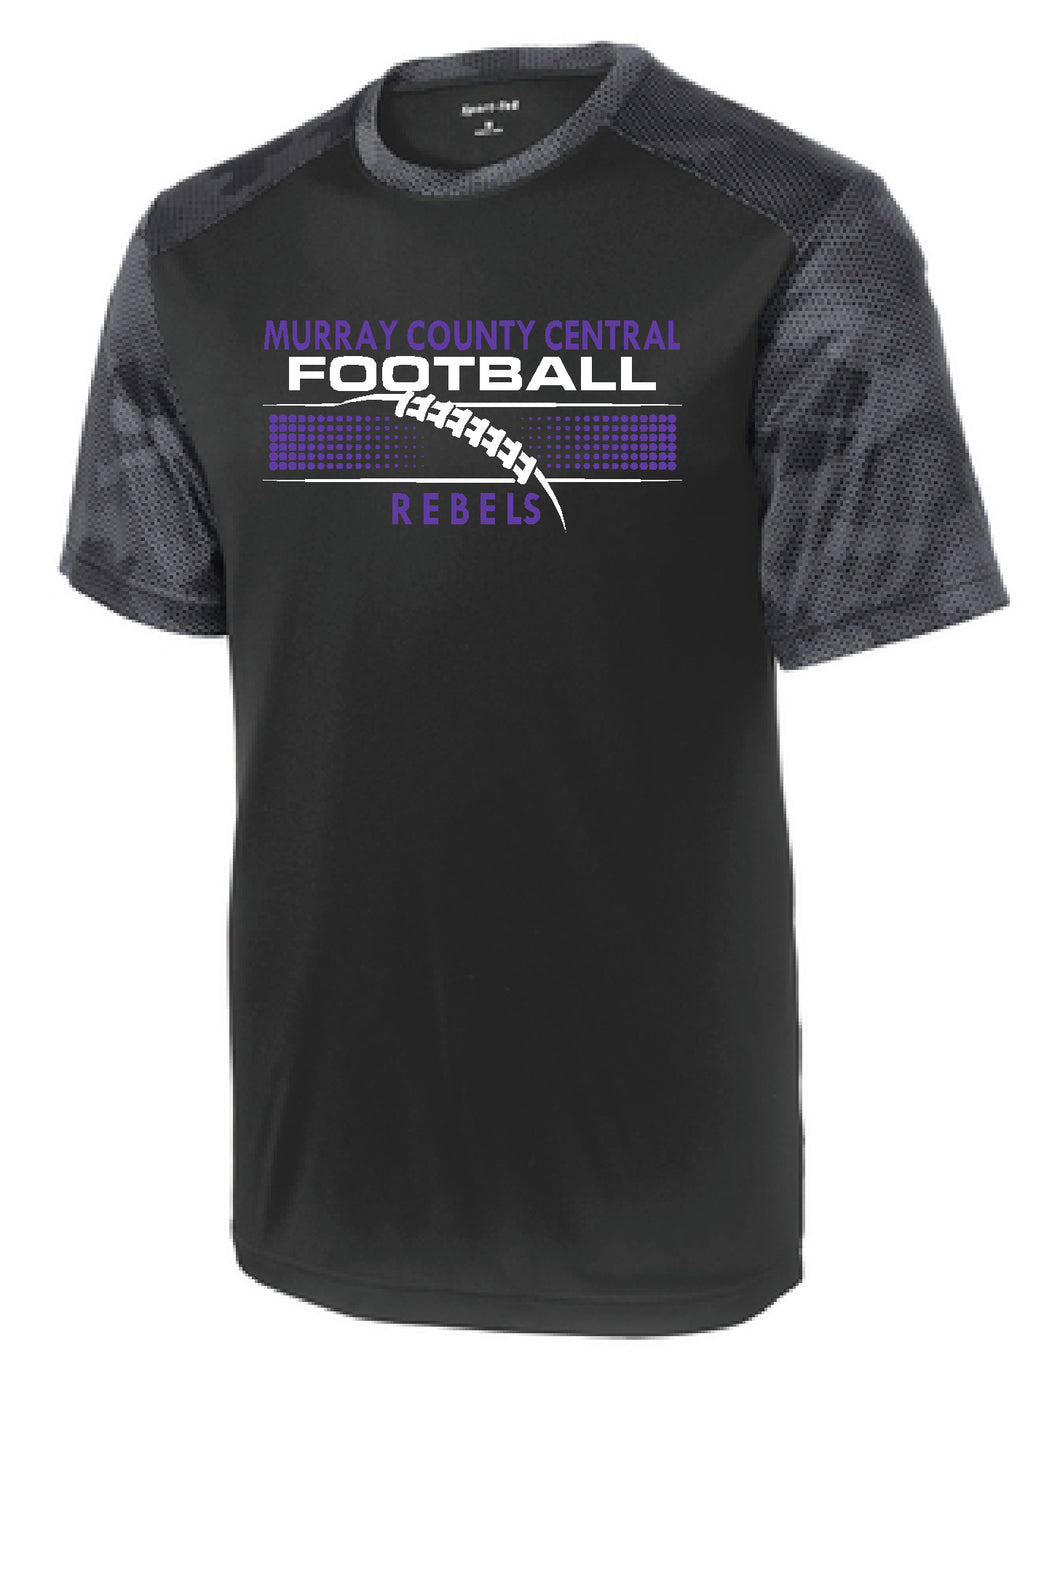 MCC Rebels Football  CamoHex Shirt